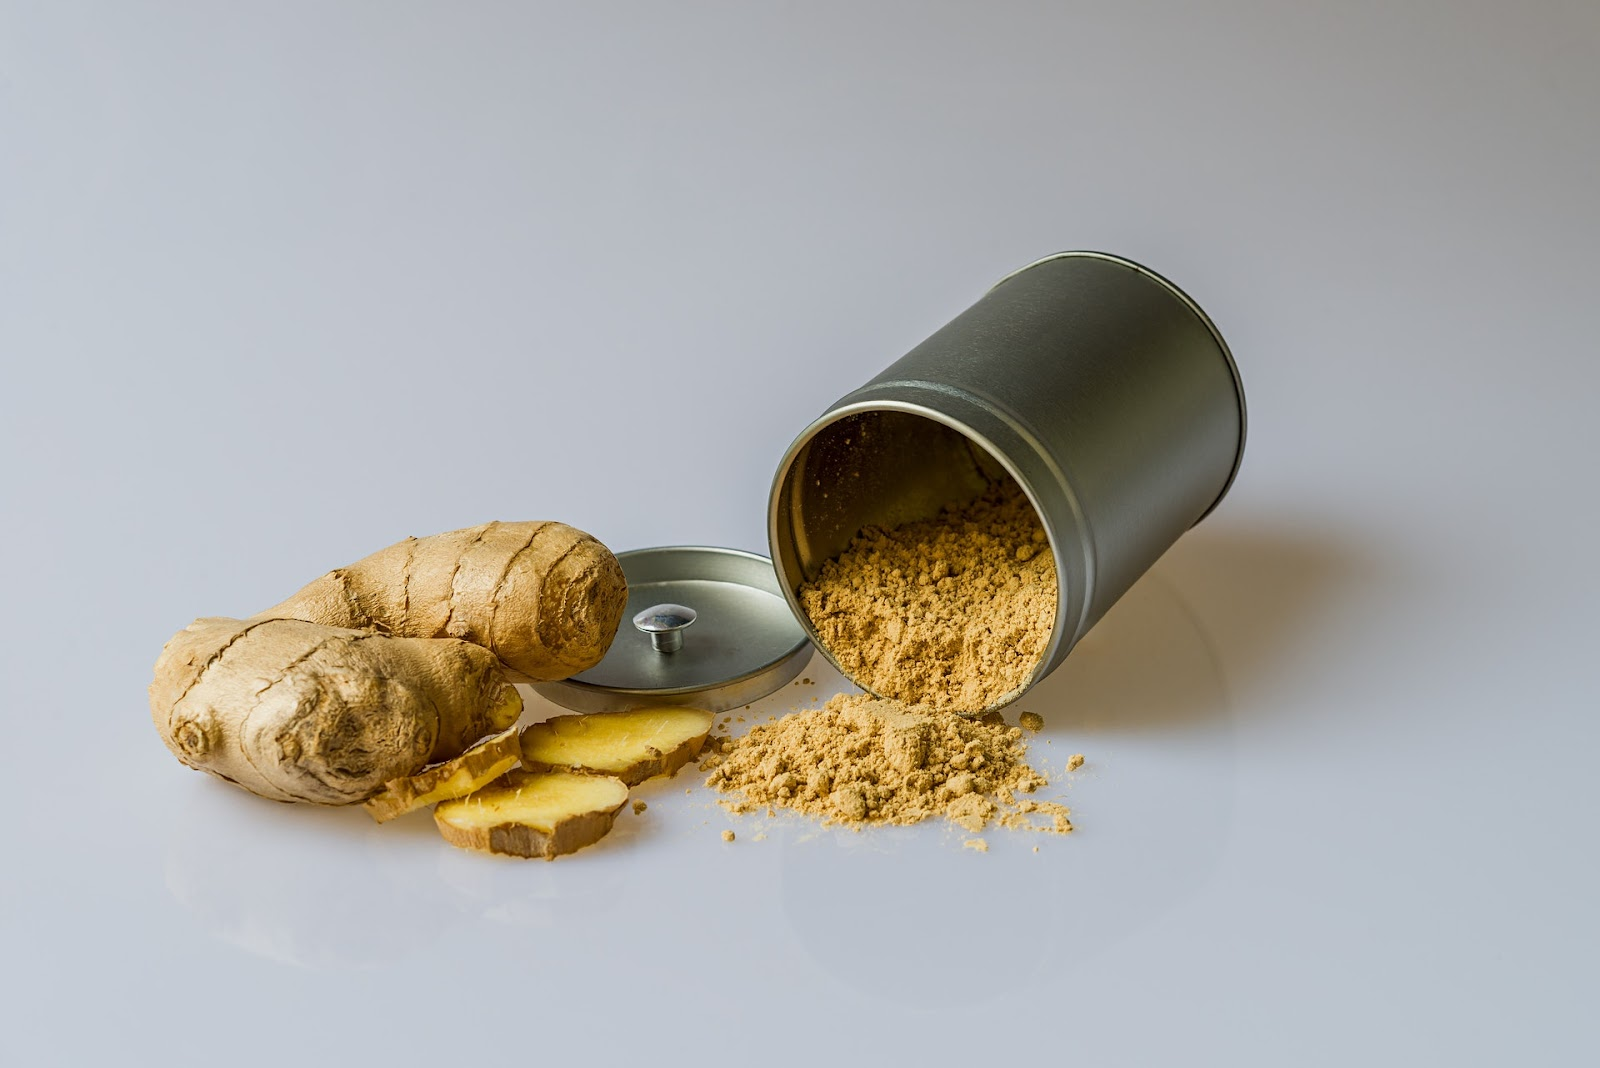 Fresh ginger beside a tin of ground ginger, ready to add to a healthy meal.